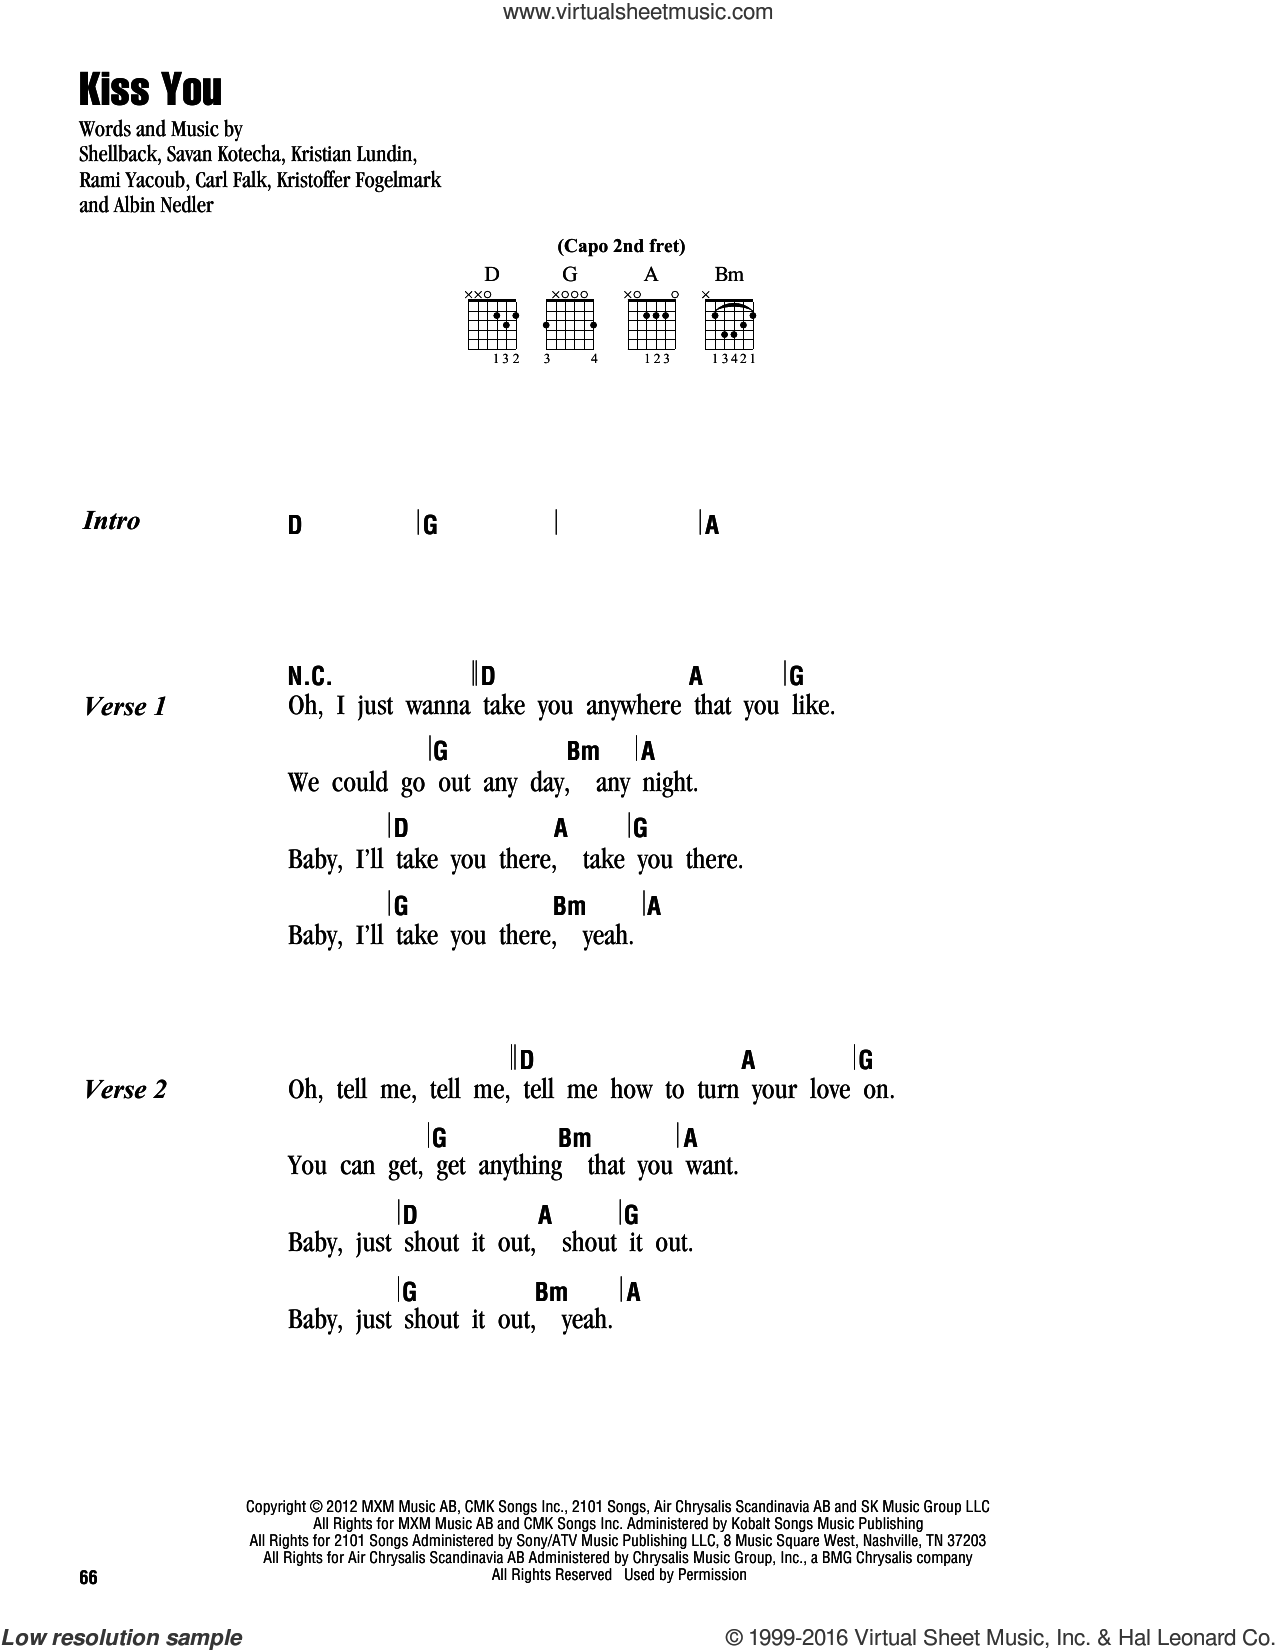 Kiss You sheet music for guitar (chords) by One Direction, Kristian Lundin, Rami, Savan Kotecha and Shellback. Score Image Preview.